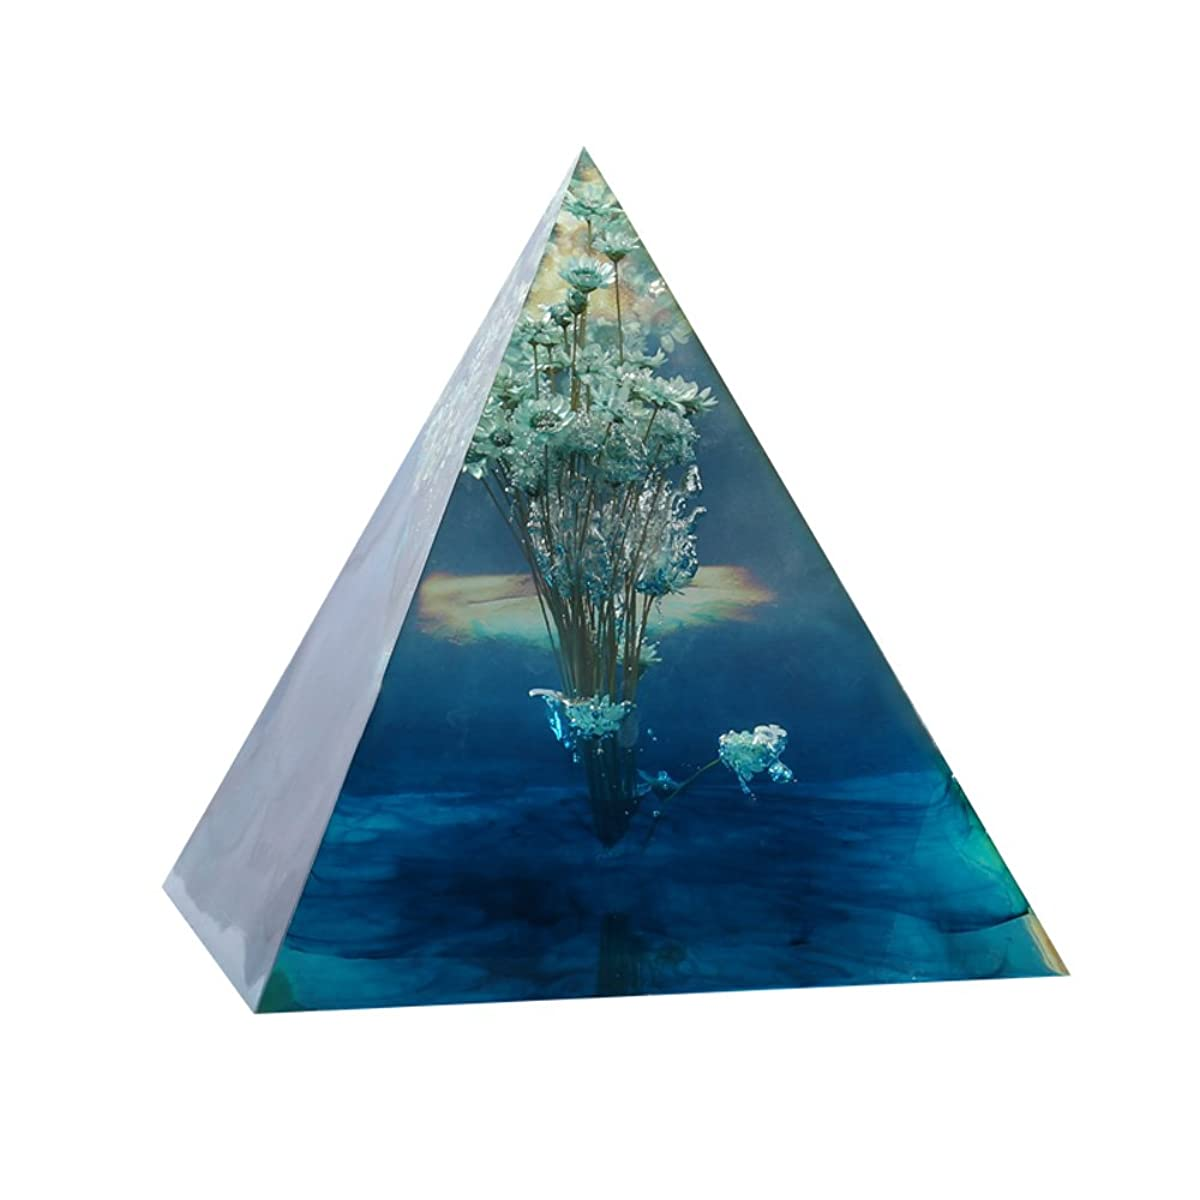 xiangshang shangmao DIY Super Pyramid Silicone Mould Resin Craft Jewelry Making Mold Plastic Frame